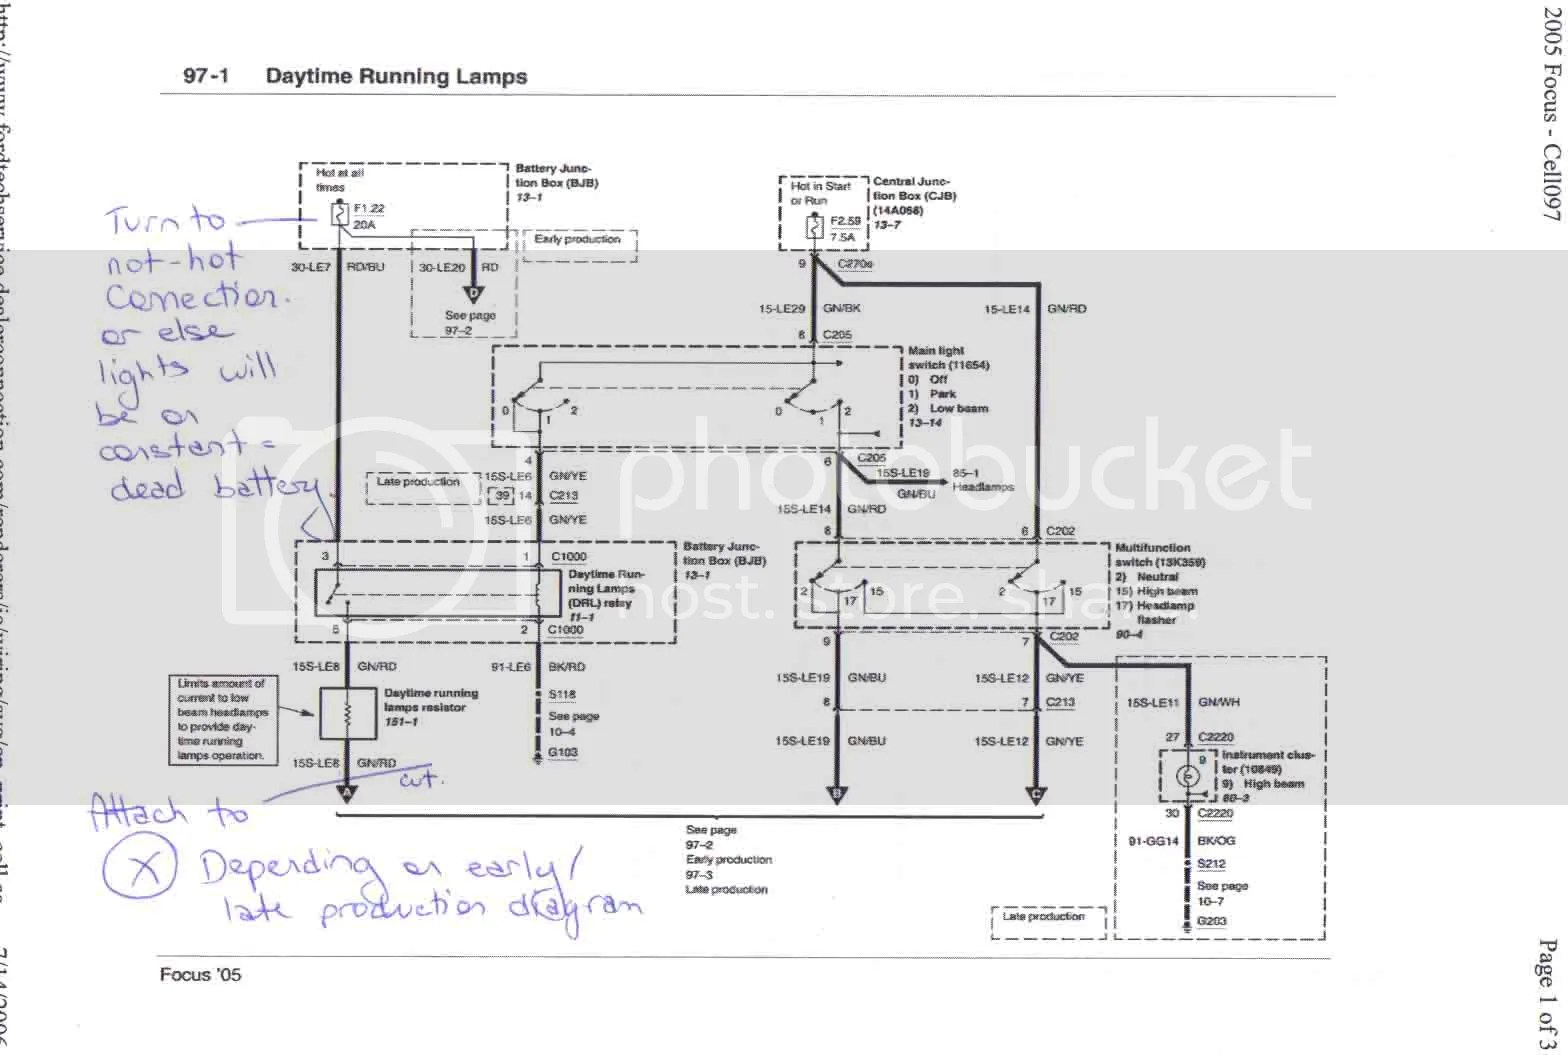 DRLdiagrampage1?resize=665%2C447 ford focus wiring diagram for towbar wiring diagram  at reclaimingppi.co